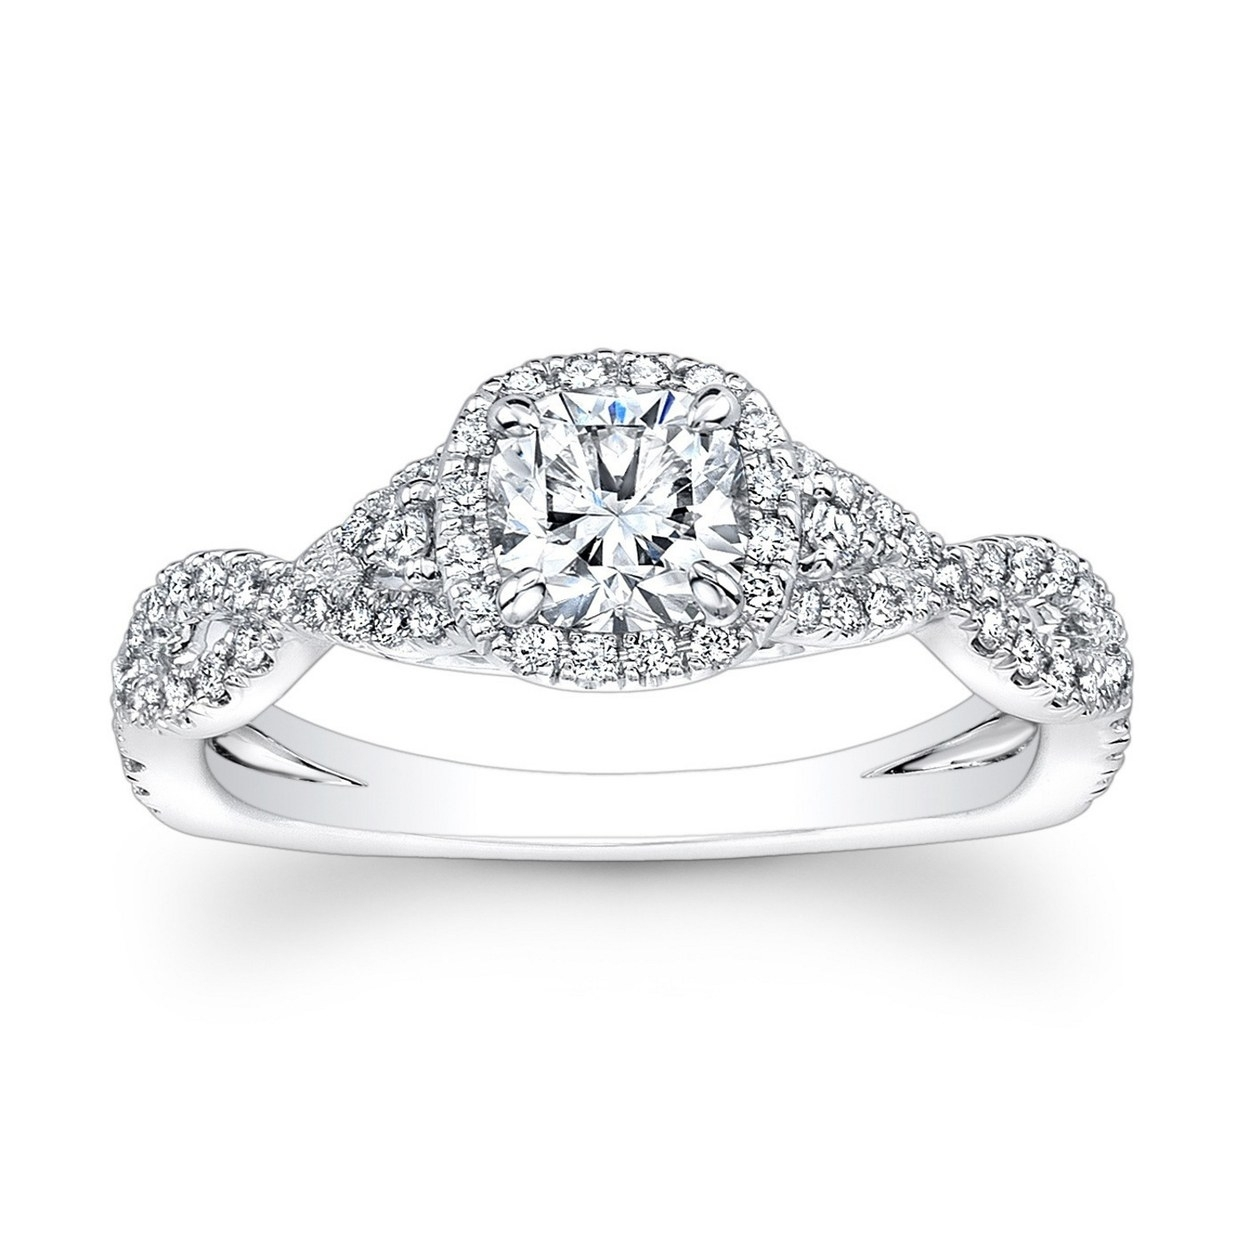 62 Diamond Engagement Rings Under $5,000 | Glamour In Latest Oval Diamond Double Frame Twist Vintage Style Bridal Rings In 14K White Gold (Gallery 14 of 15)